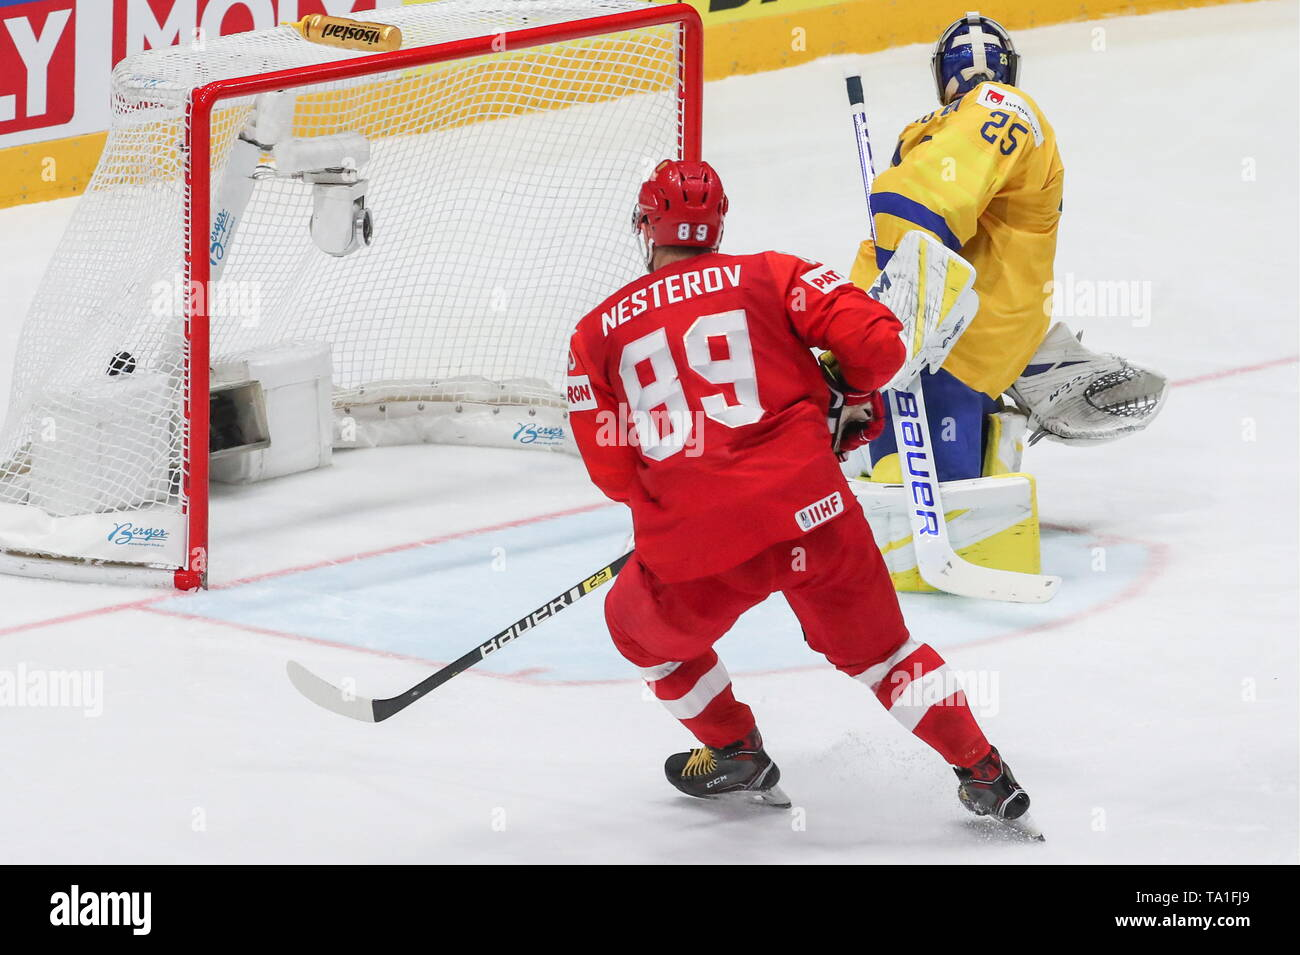 Bratislava, Slovakia. 21st May, 2019. BRATISLAVA, SLOVAKIA - MAY 21, 2019: Sweden's goalie Jacob Markstrom (R) concedes a goal in the 2019 IIHF Ice Hockey World Championship Preliminary Round Group B match against Russia at Ondrej Nepela Arena. Pictured left is Russia's Nikita Nesterov. Alexander Demianchuk/TASS Credit: ITAR-TASS News Agency/Alamy Live News - Stock Image